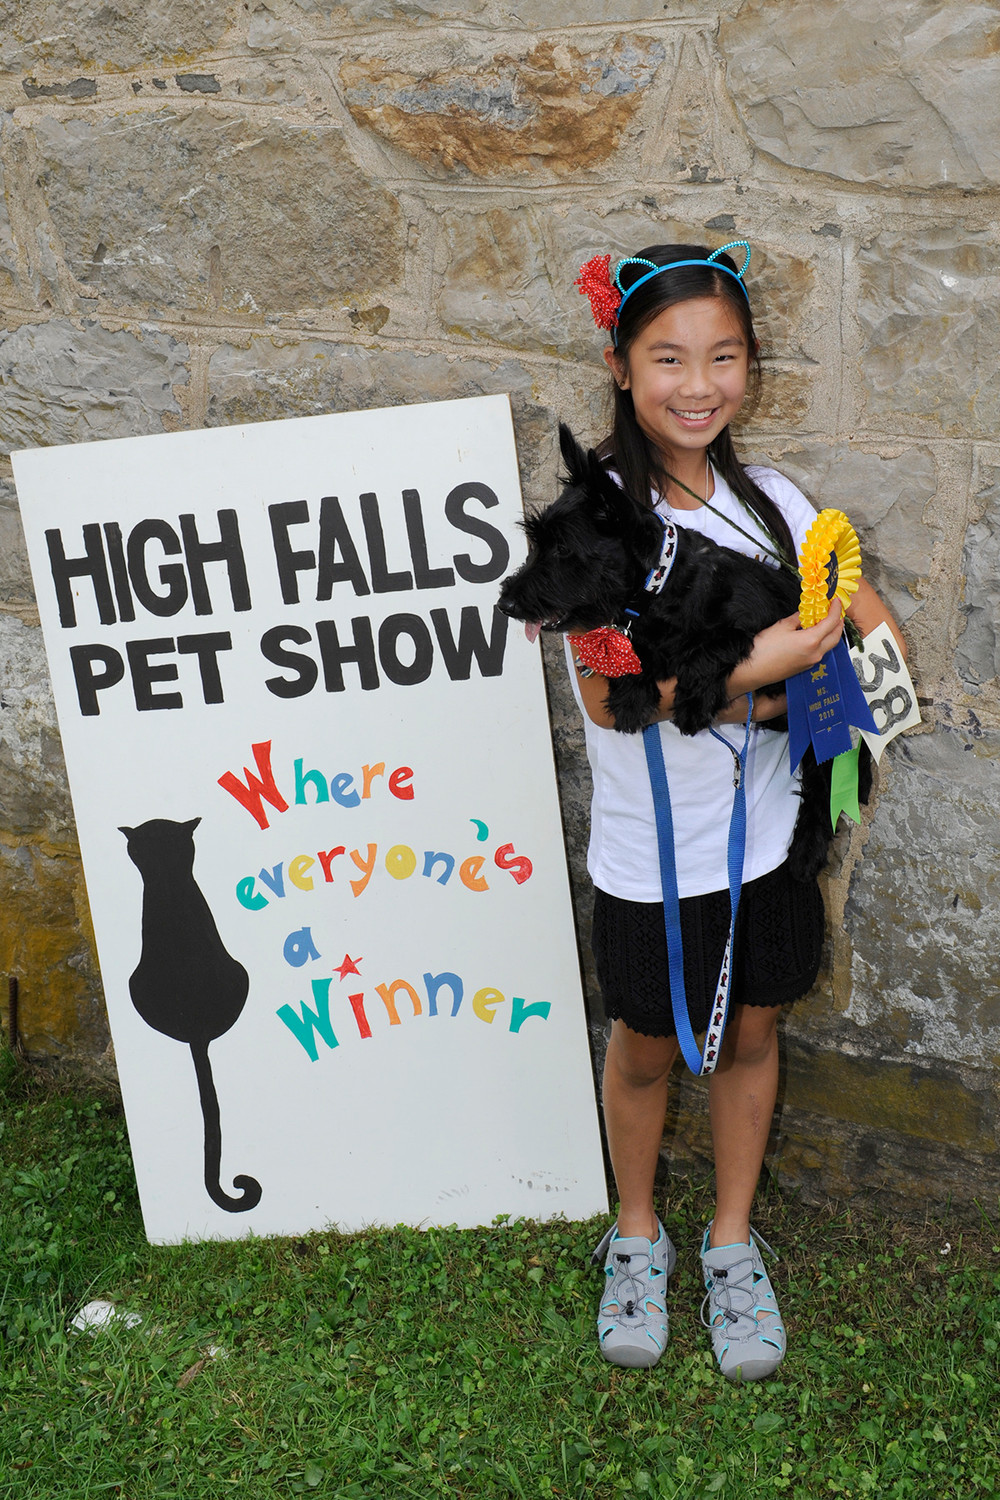 After two rain outs in the spring, the 30th Annual High Falls Pet Show finally had good weather for the event. This year's organizer, Yvette Lee, assures all it will be back in the spring of 2019!